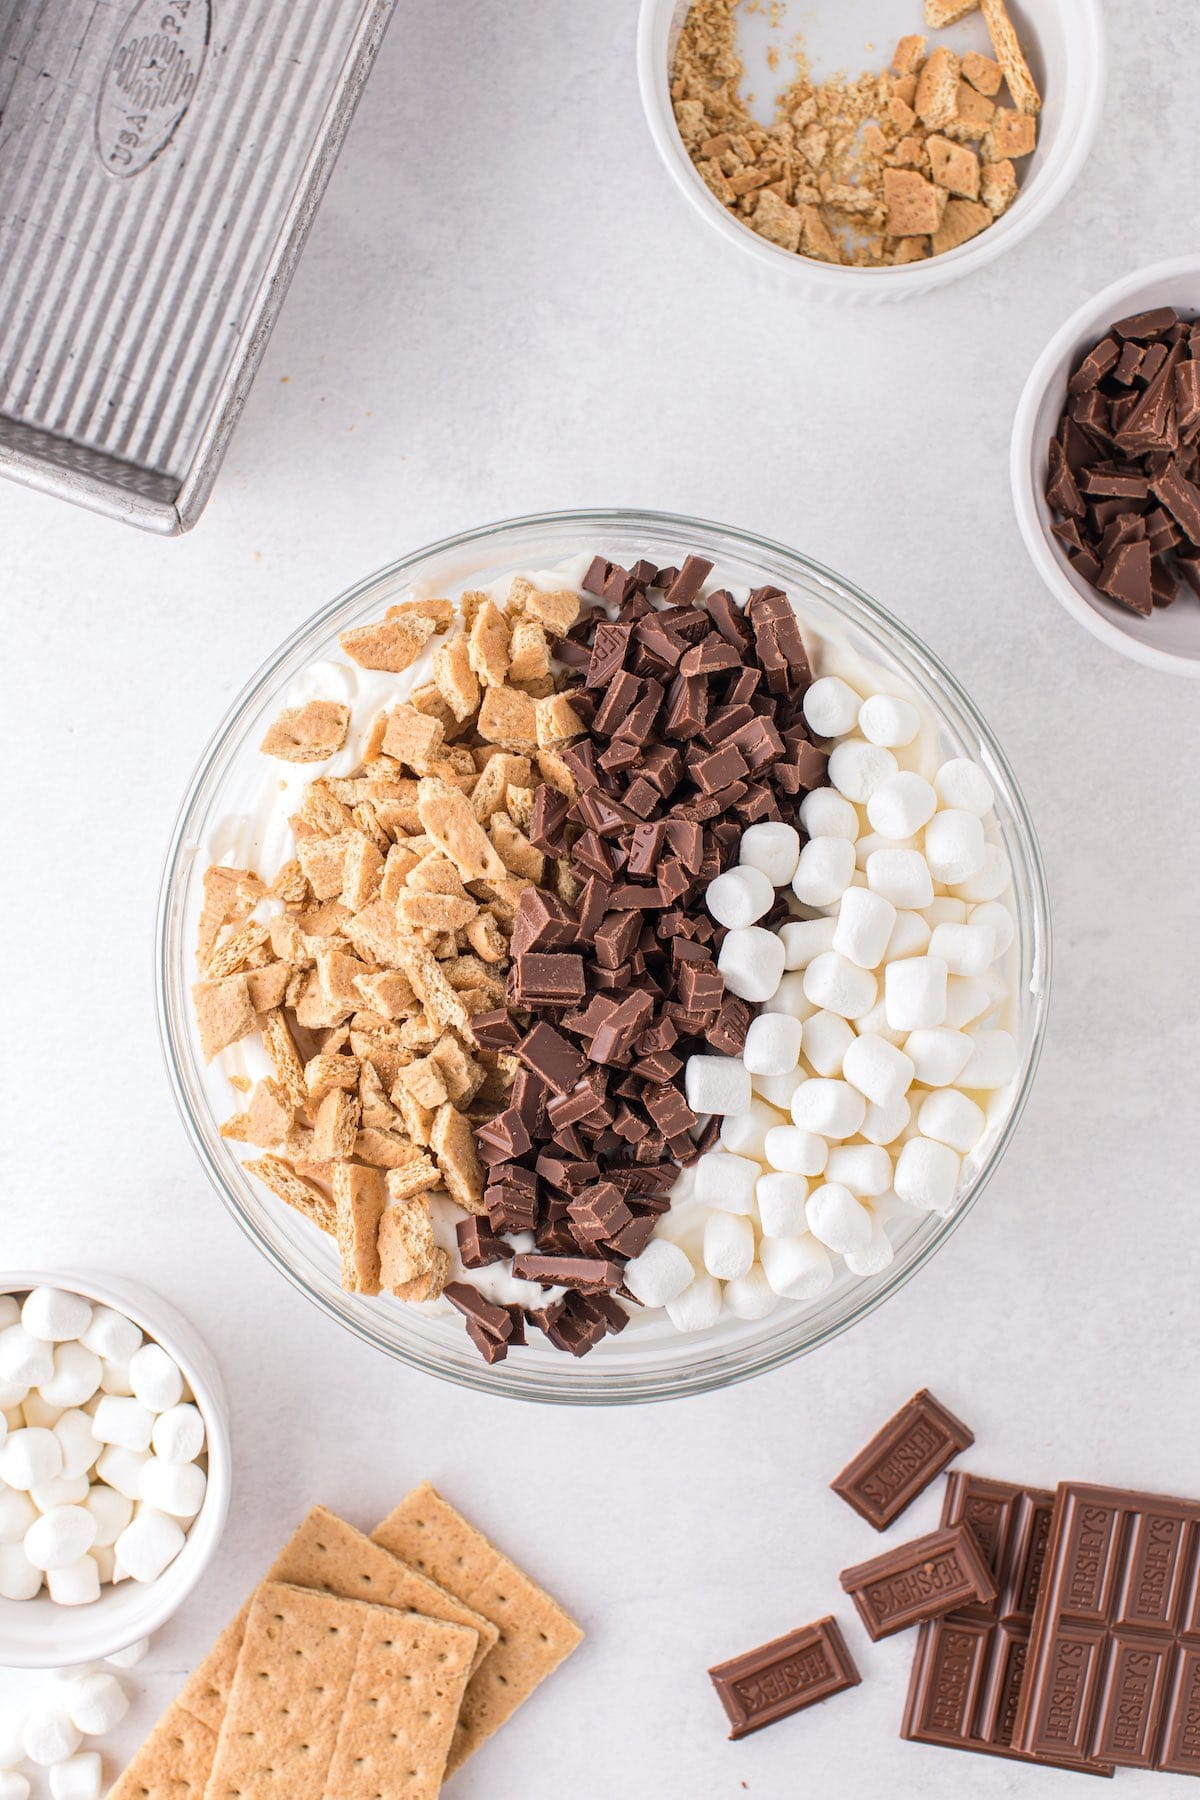 Gently stir in the graham crackers, chopped chocolate, and marshmallows